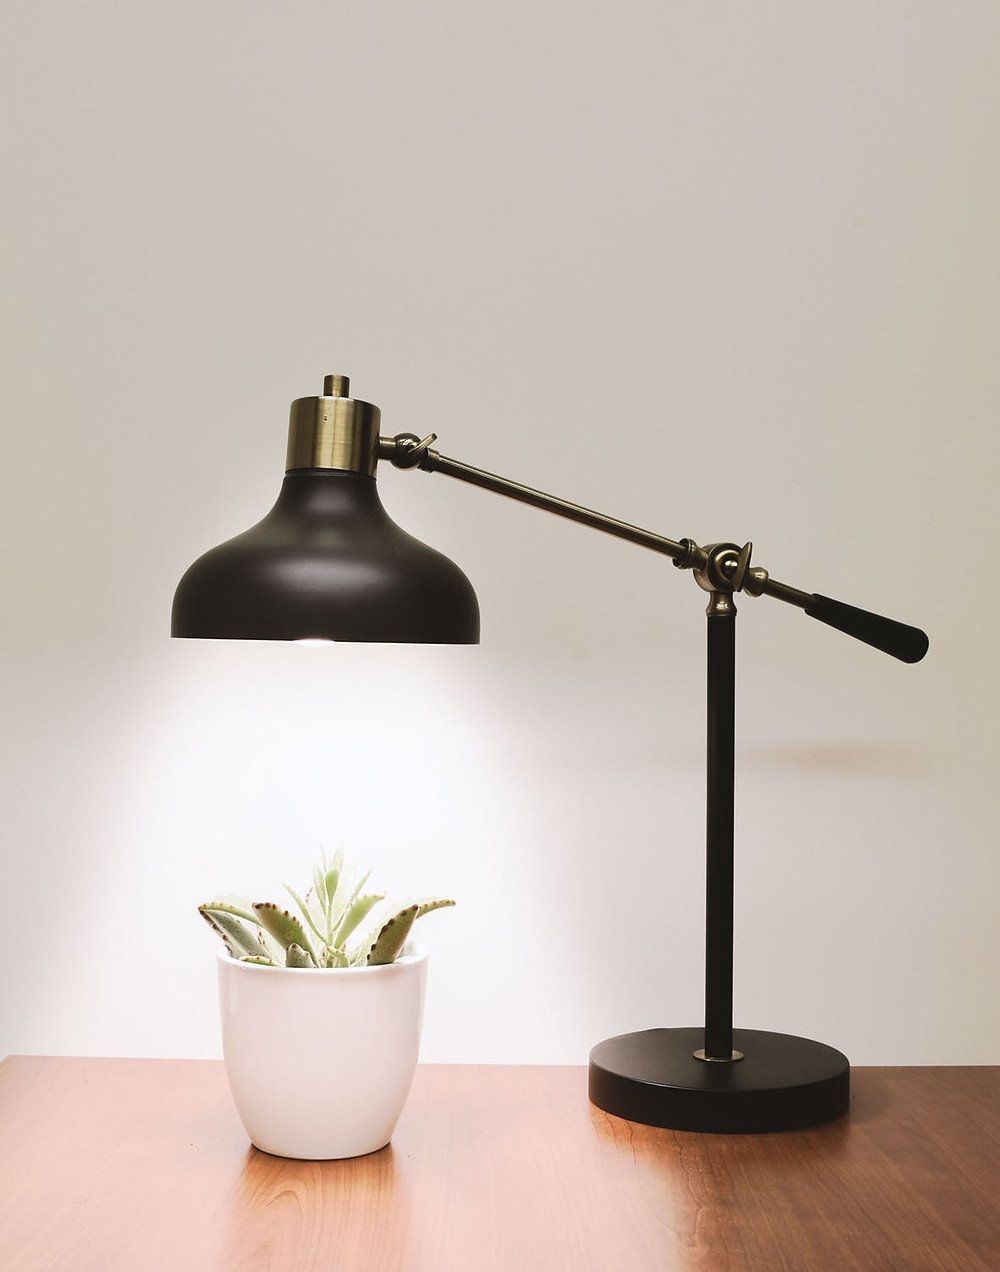 lamp shining over plant